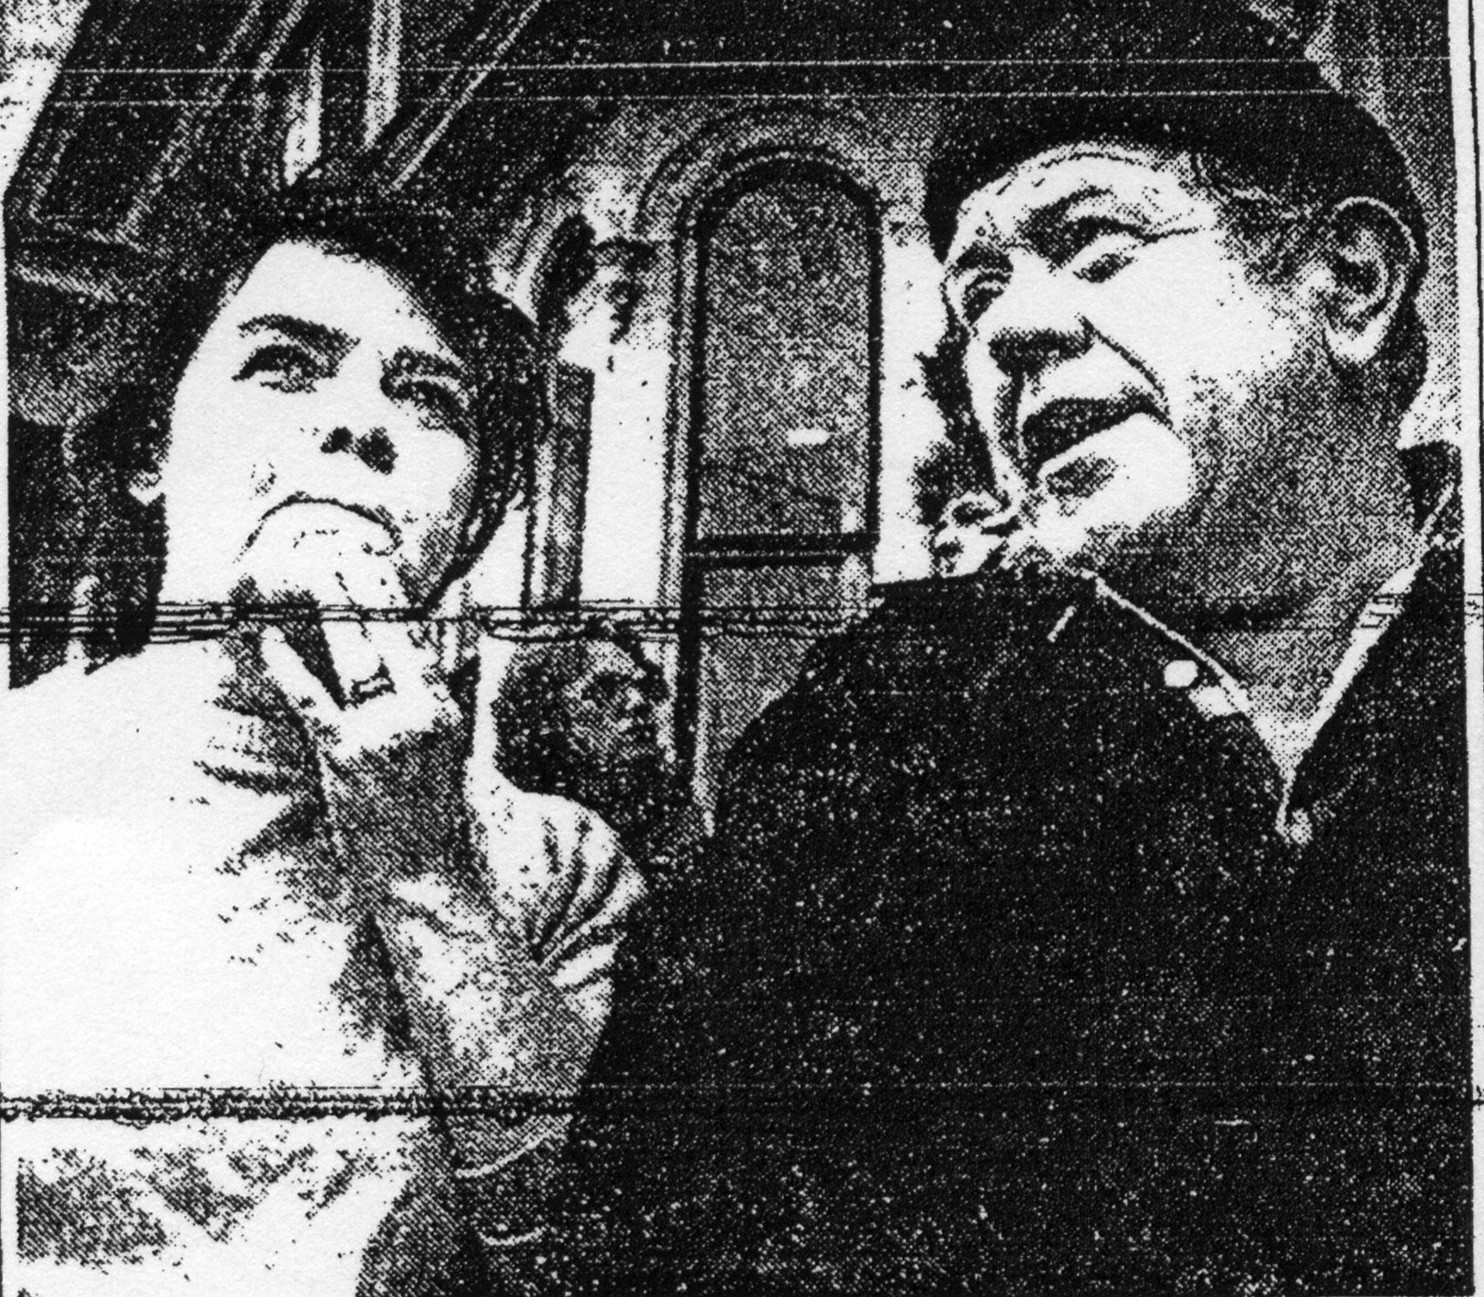 Louis and Robert Pettis look on as flames spread through their second floor apartment at 123 Congress St., in 1985. The building was their home for 24 years.